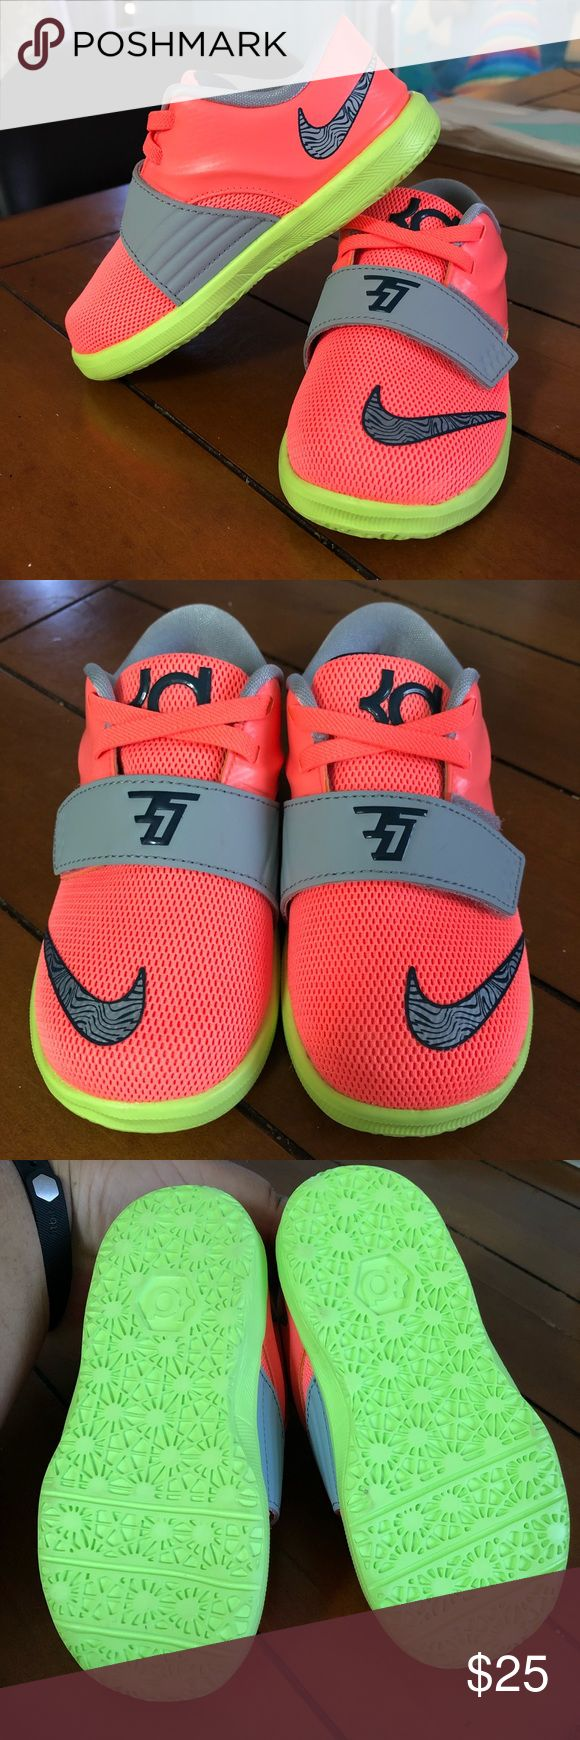 NWOT Kevin Durant Nikes for Toddler, Size 8C New, never used!  Great for boys or girls!! Low-top sneakers with velcro strap. US size 8C Nike Shoes Sneakers